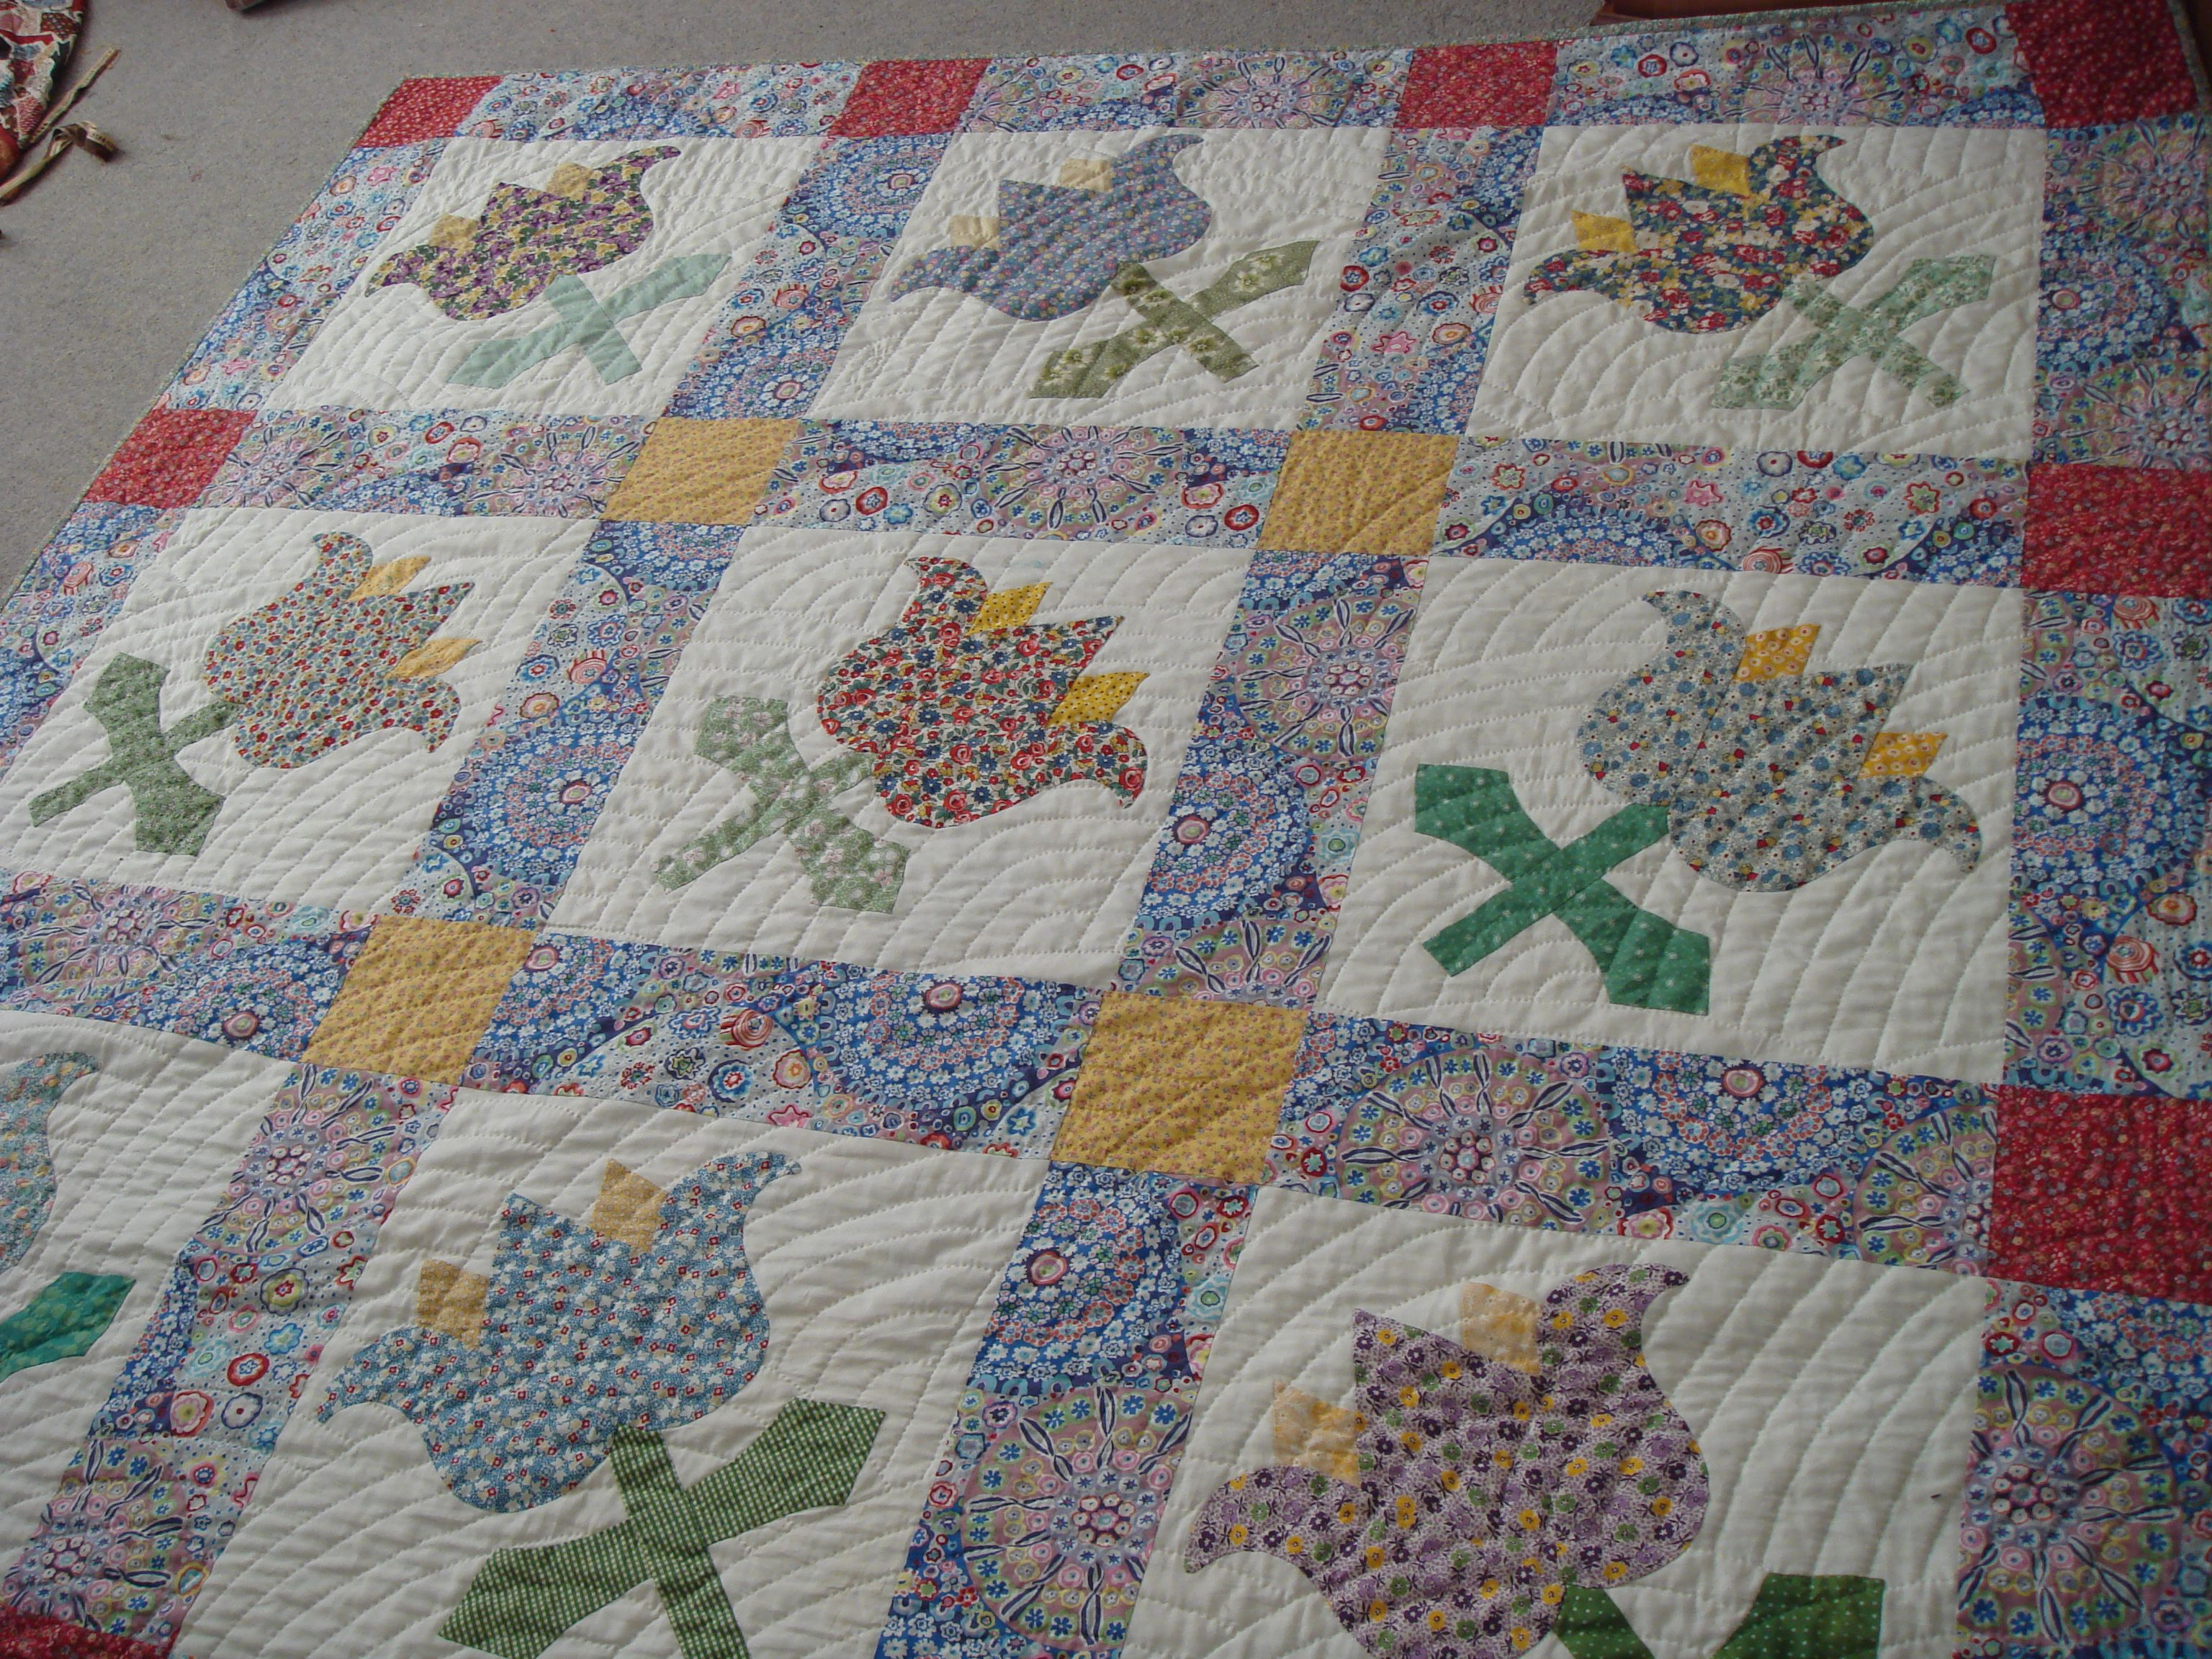 My big blooms quilt: amish waves quilted hand quilting pinterest